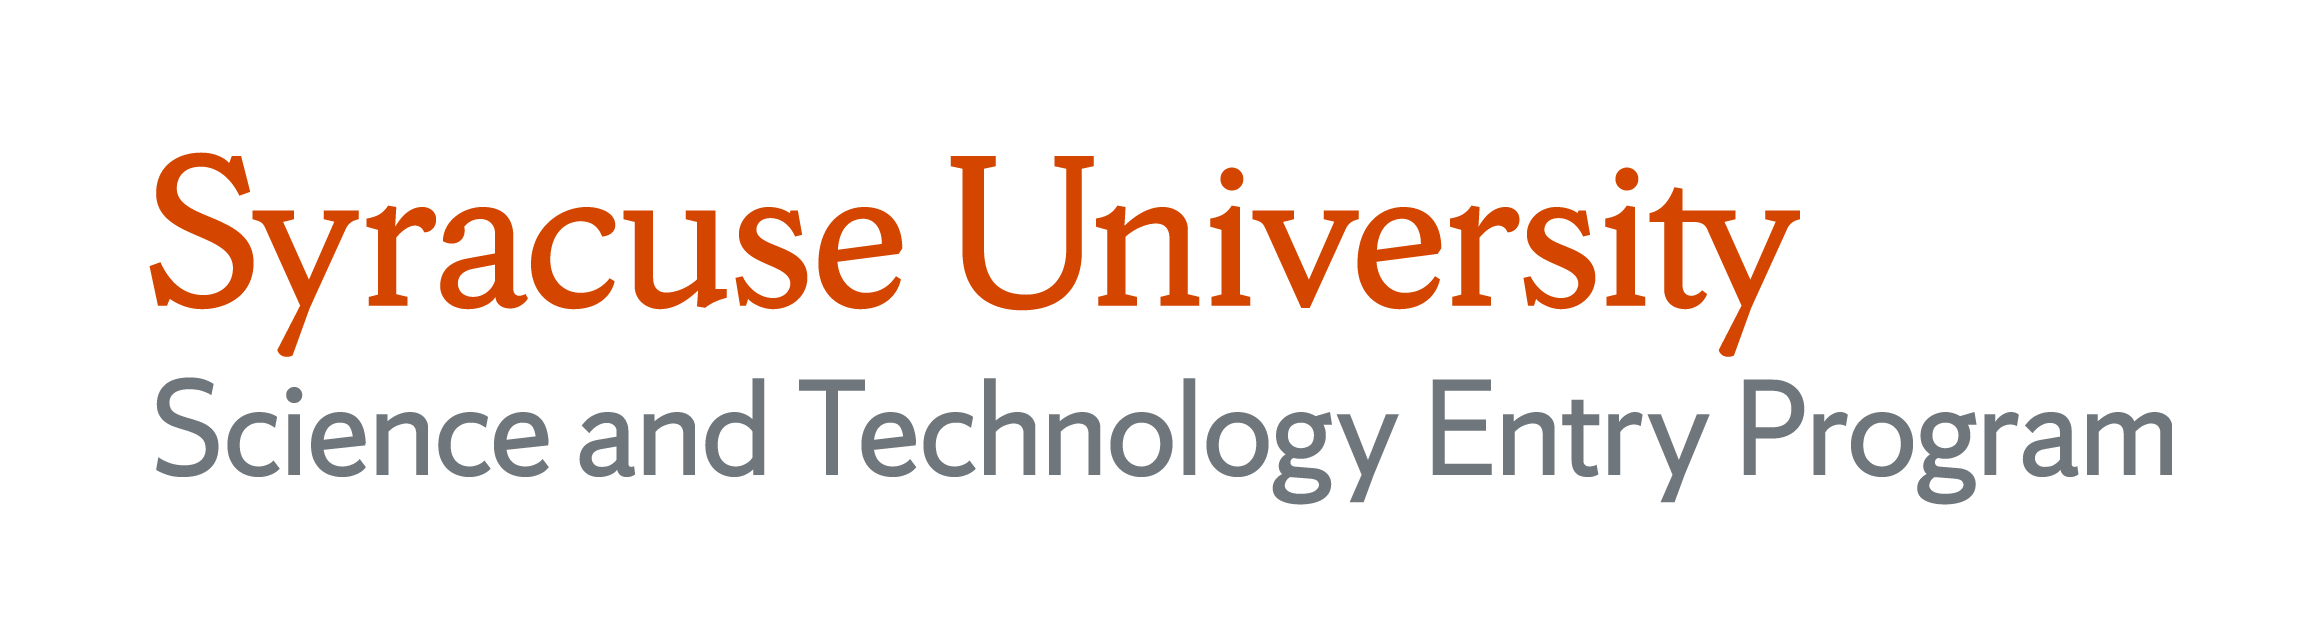 Syracuse University Science and Technology Entry Program